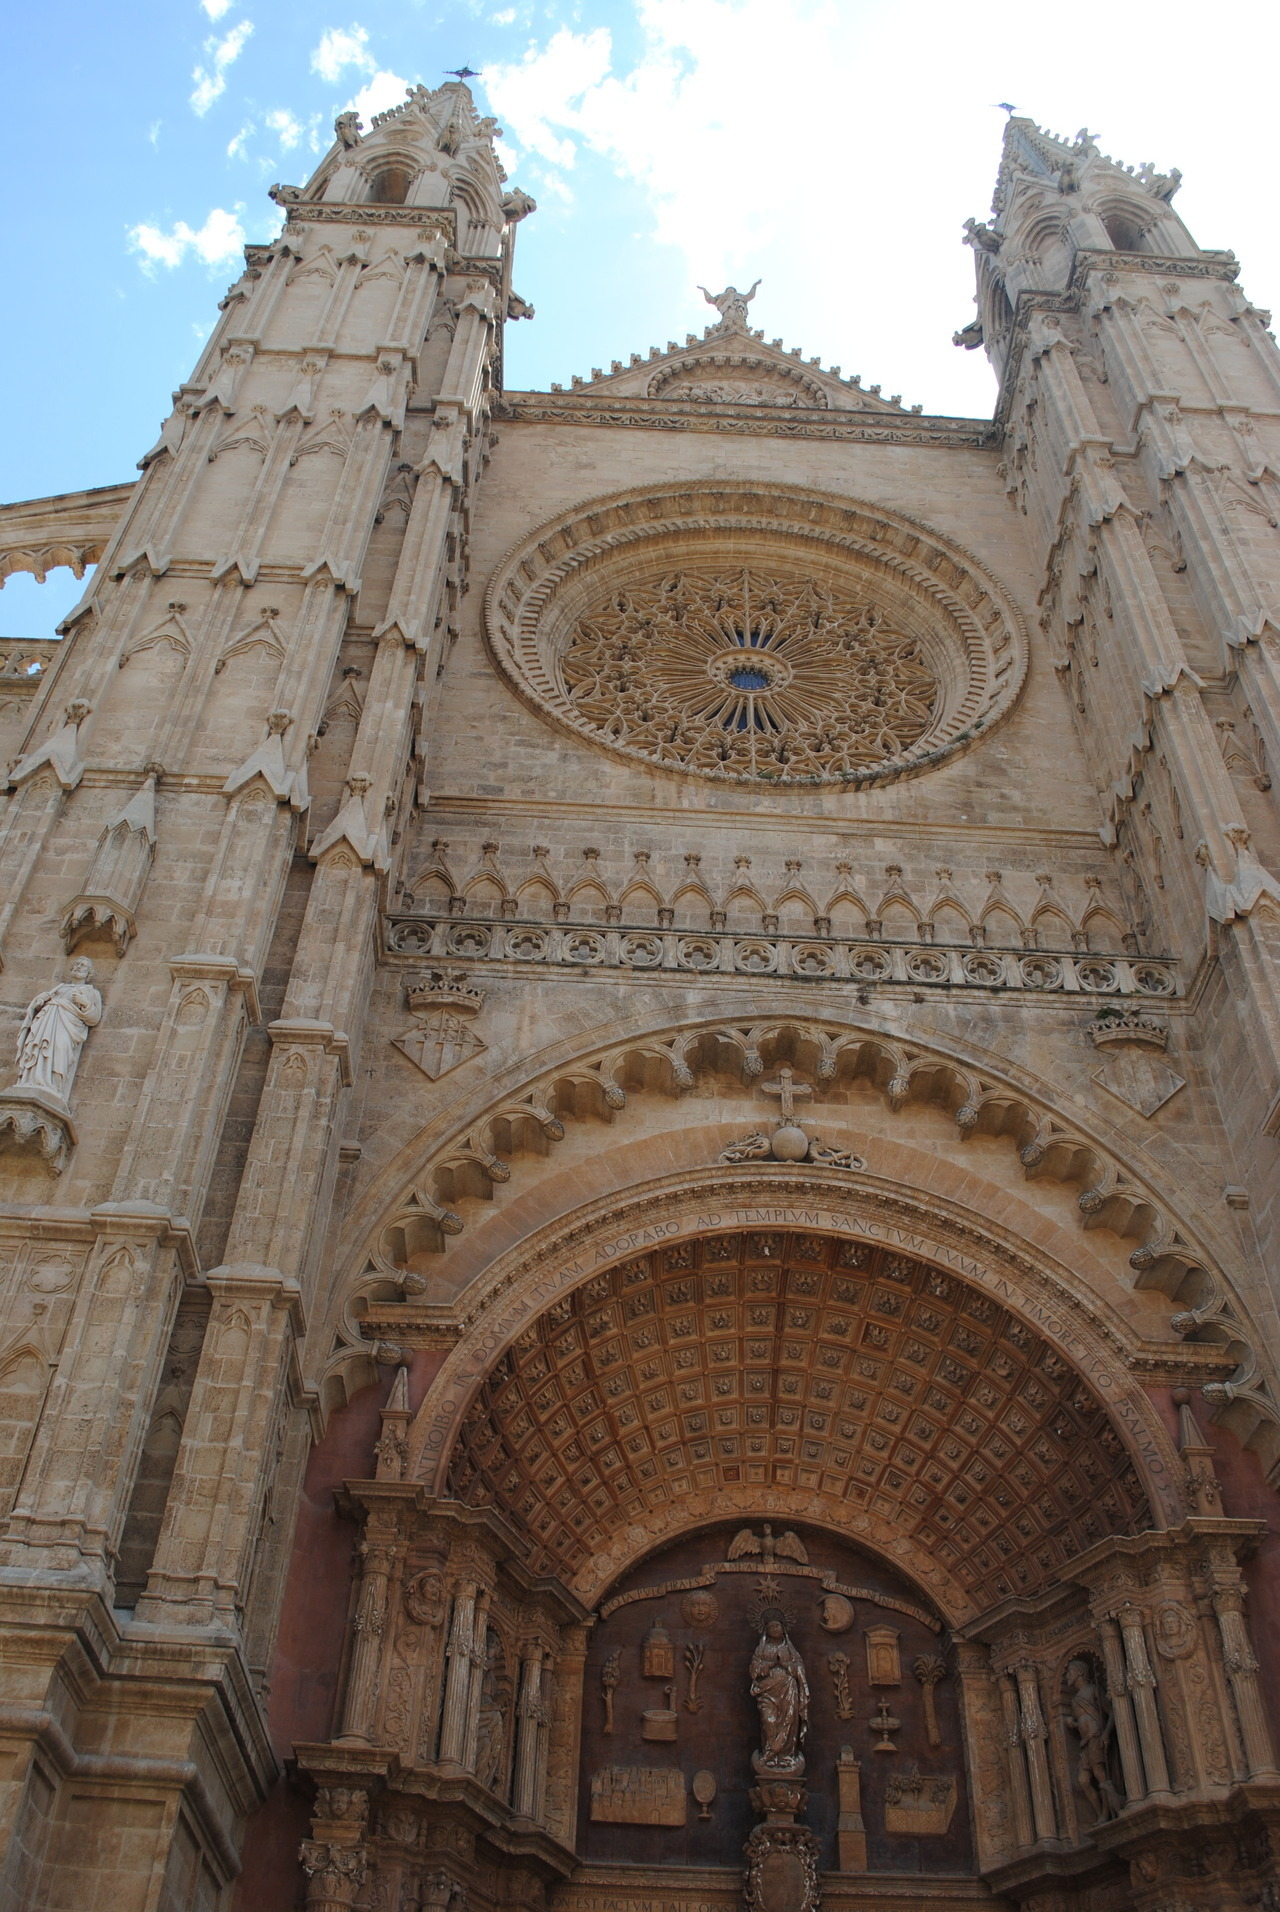 Location: Palma Cathedral, Mallorca Date: August 2010 Camera: Nikon D3000